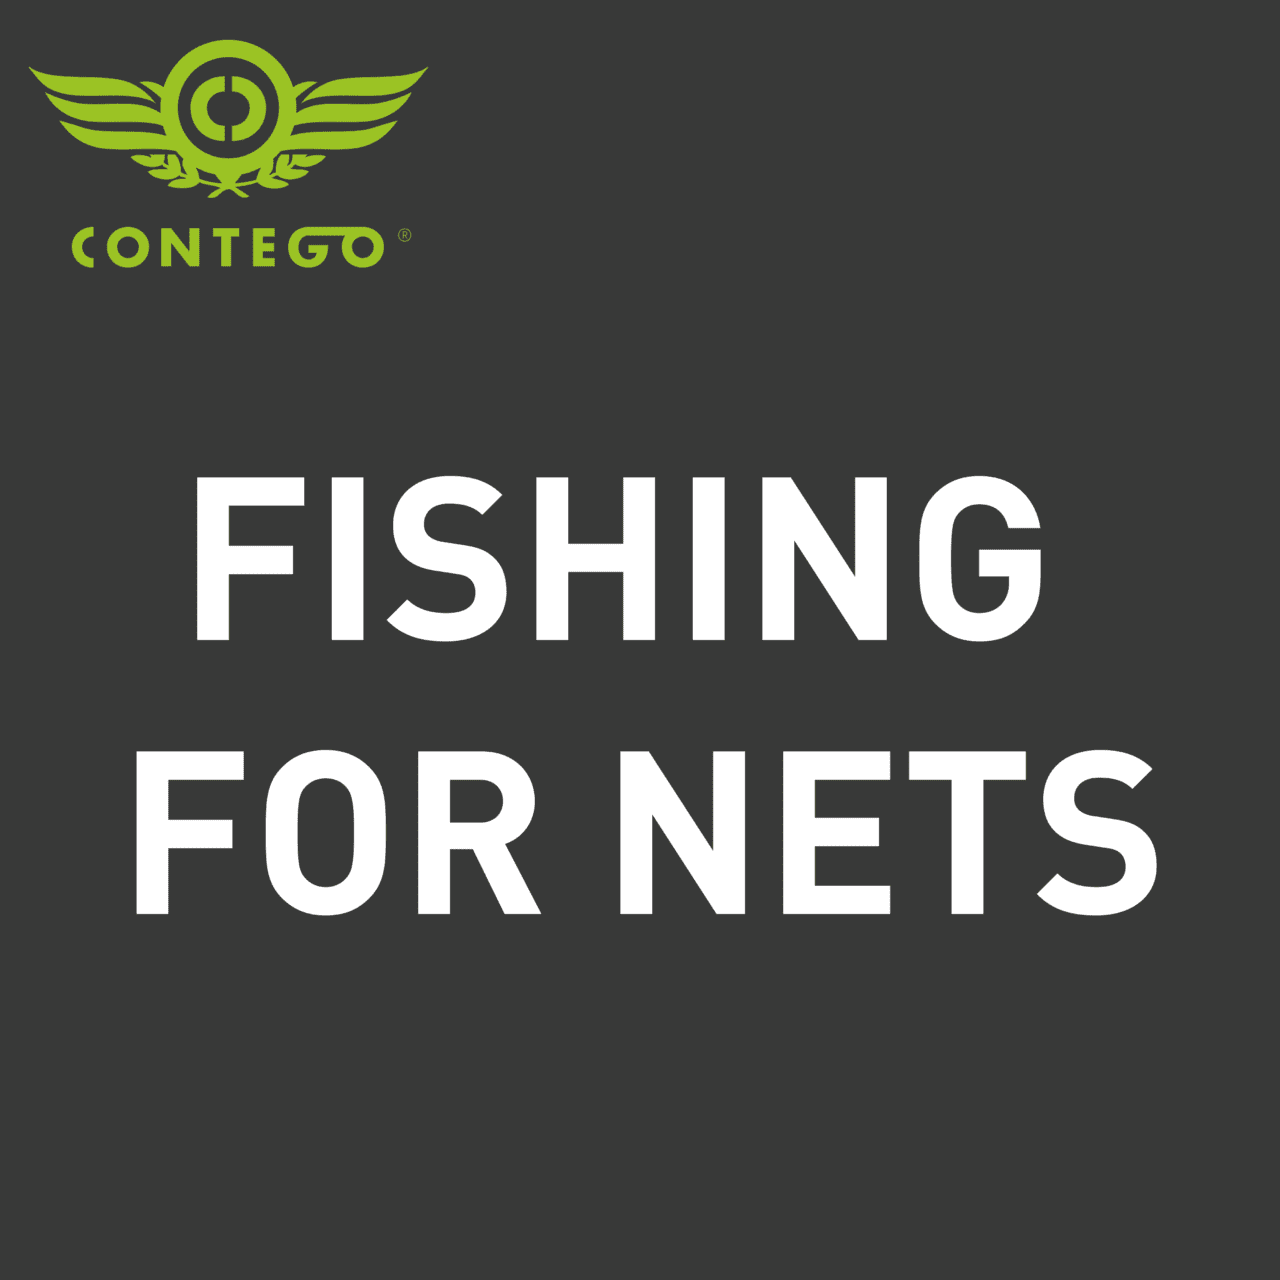 FISHING FOR NETS